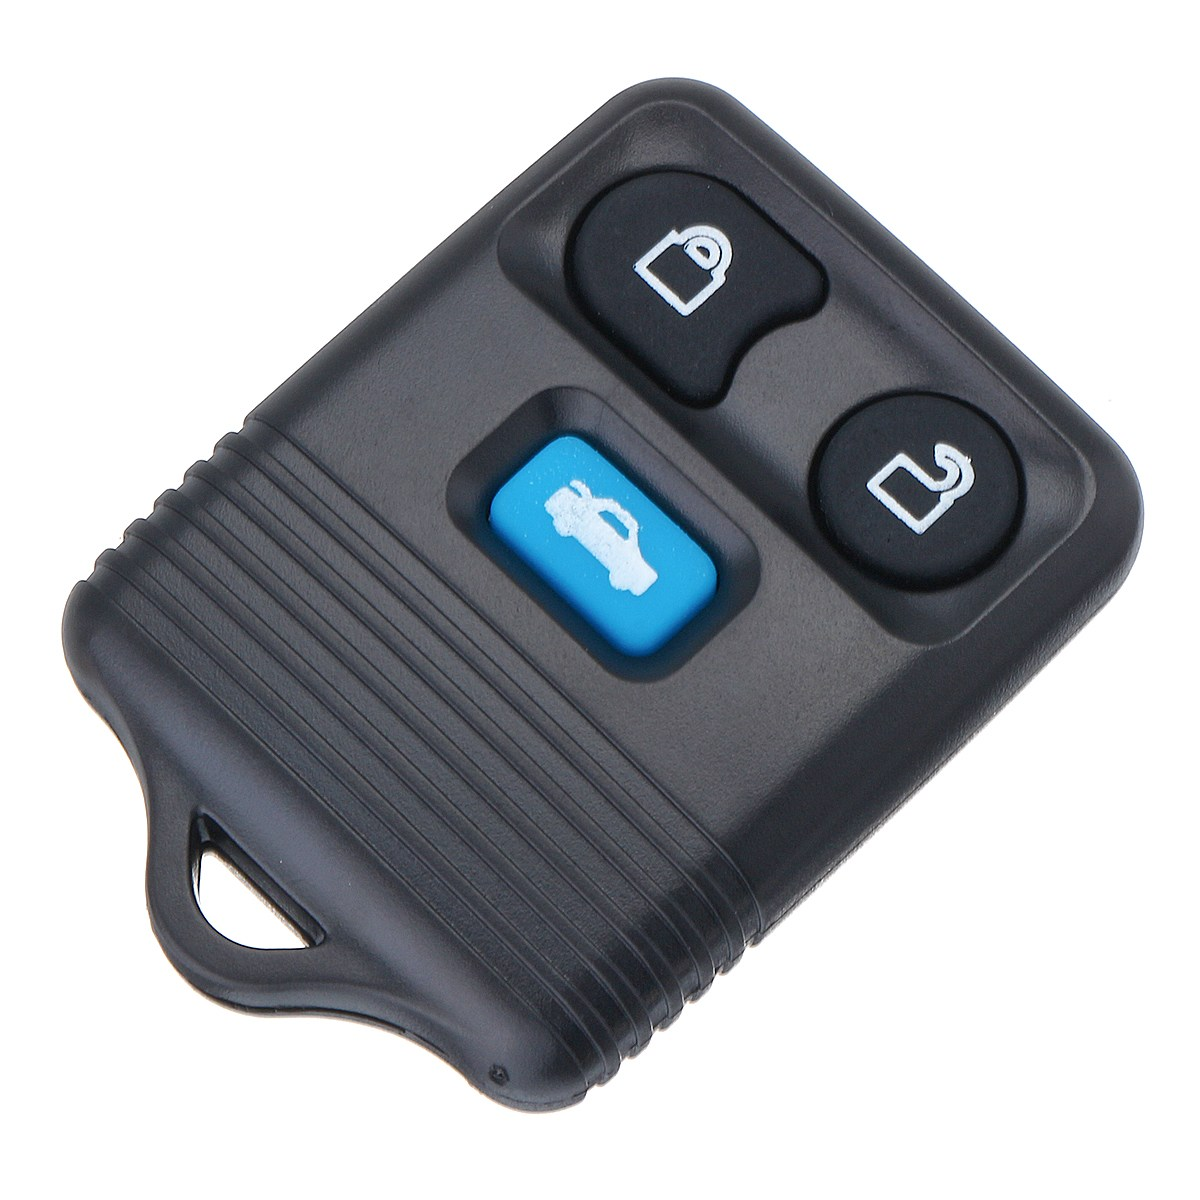 3 Buttons Car Remote Key Fob Case Shell With Battery For Ford